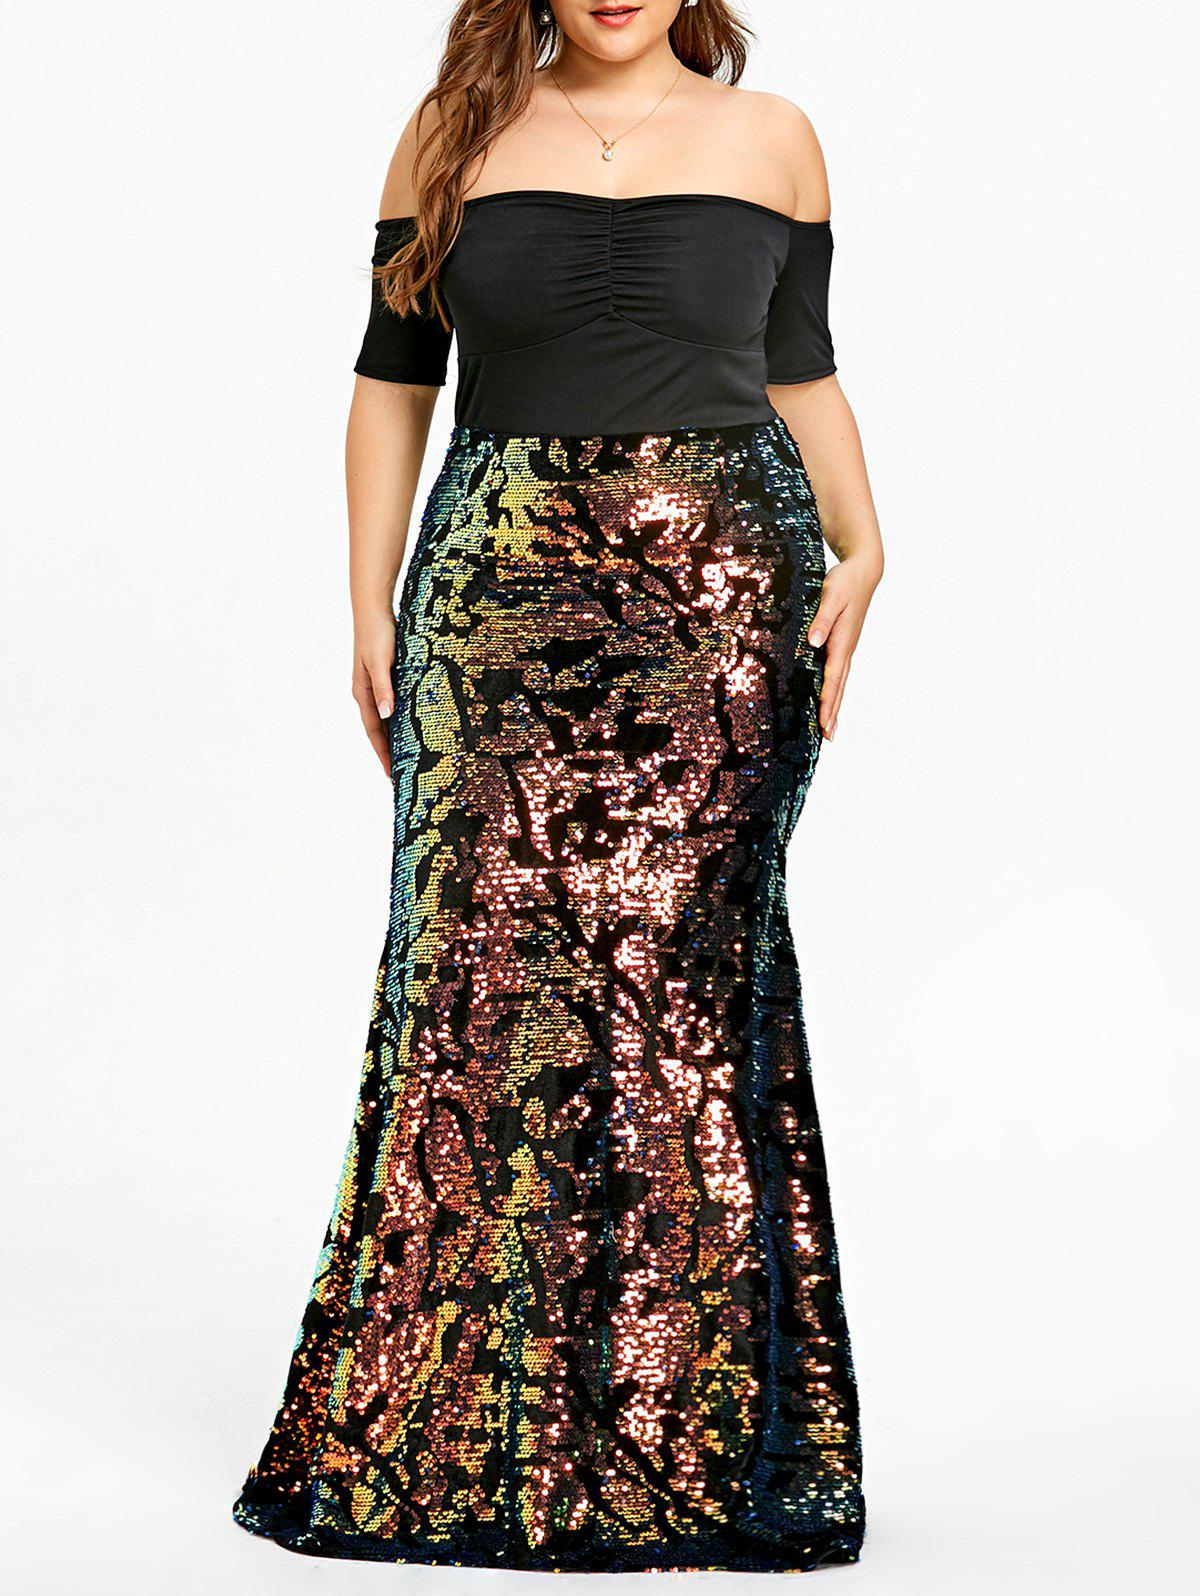 69% OFF] Plus Size Sequined Maxi Mermaid Dress | Rosegal